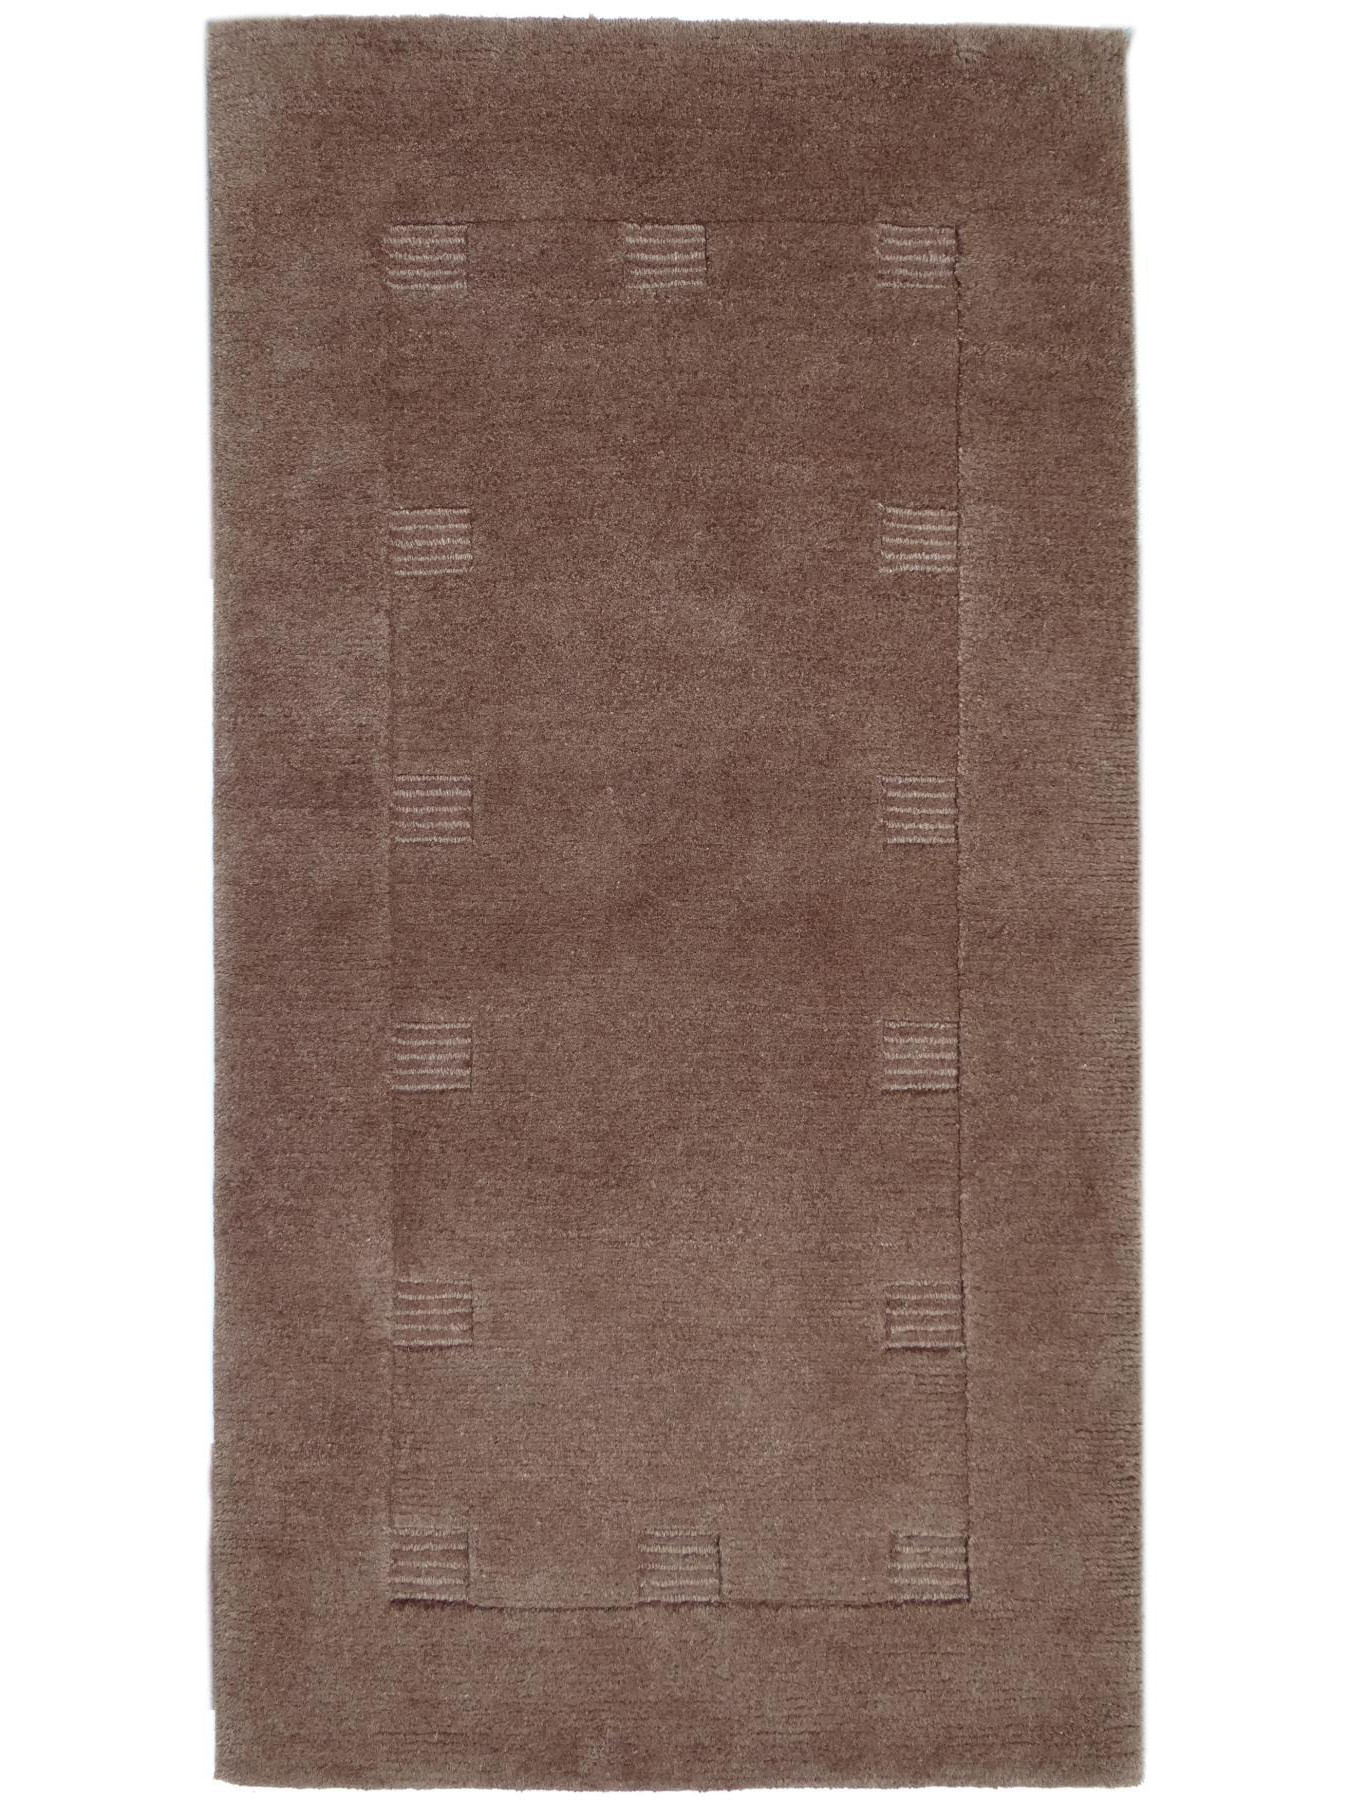 Carpets with borders - ROCK 2 - 6006